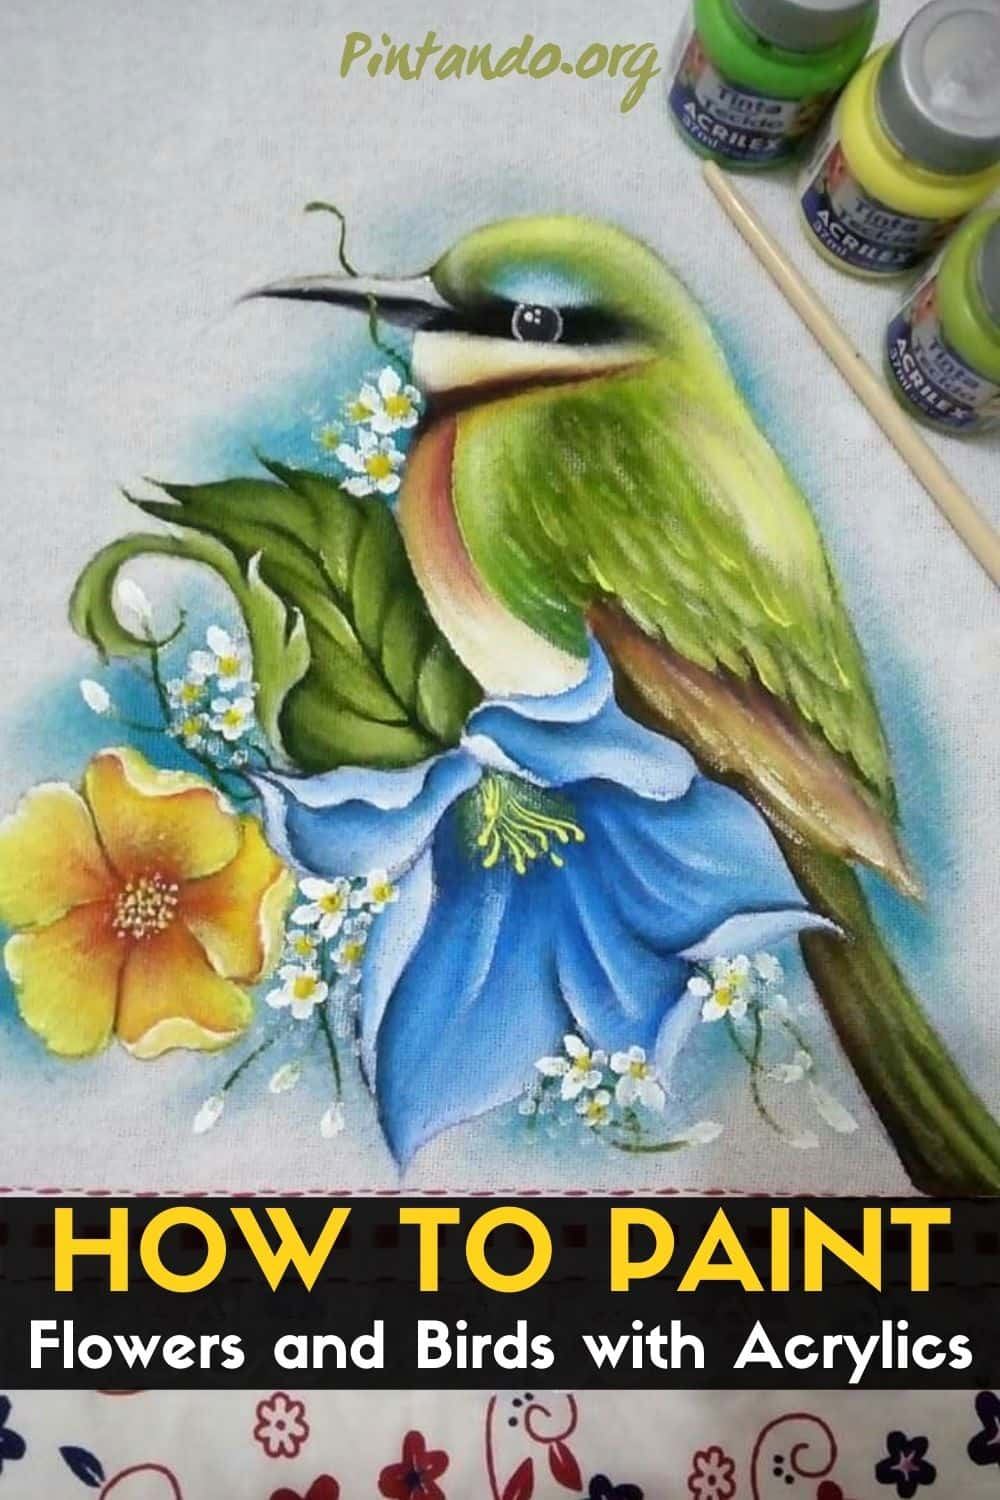 How to Paint Flowers and Birds with Acrylics